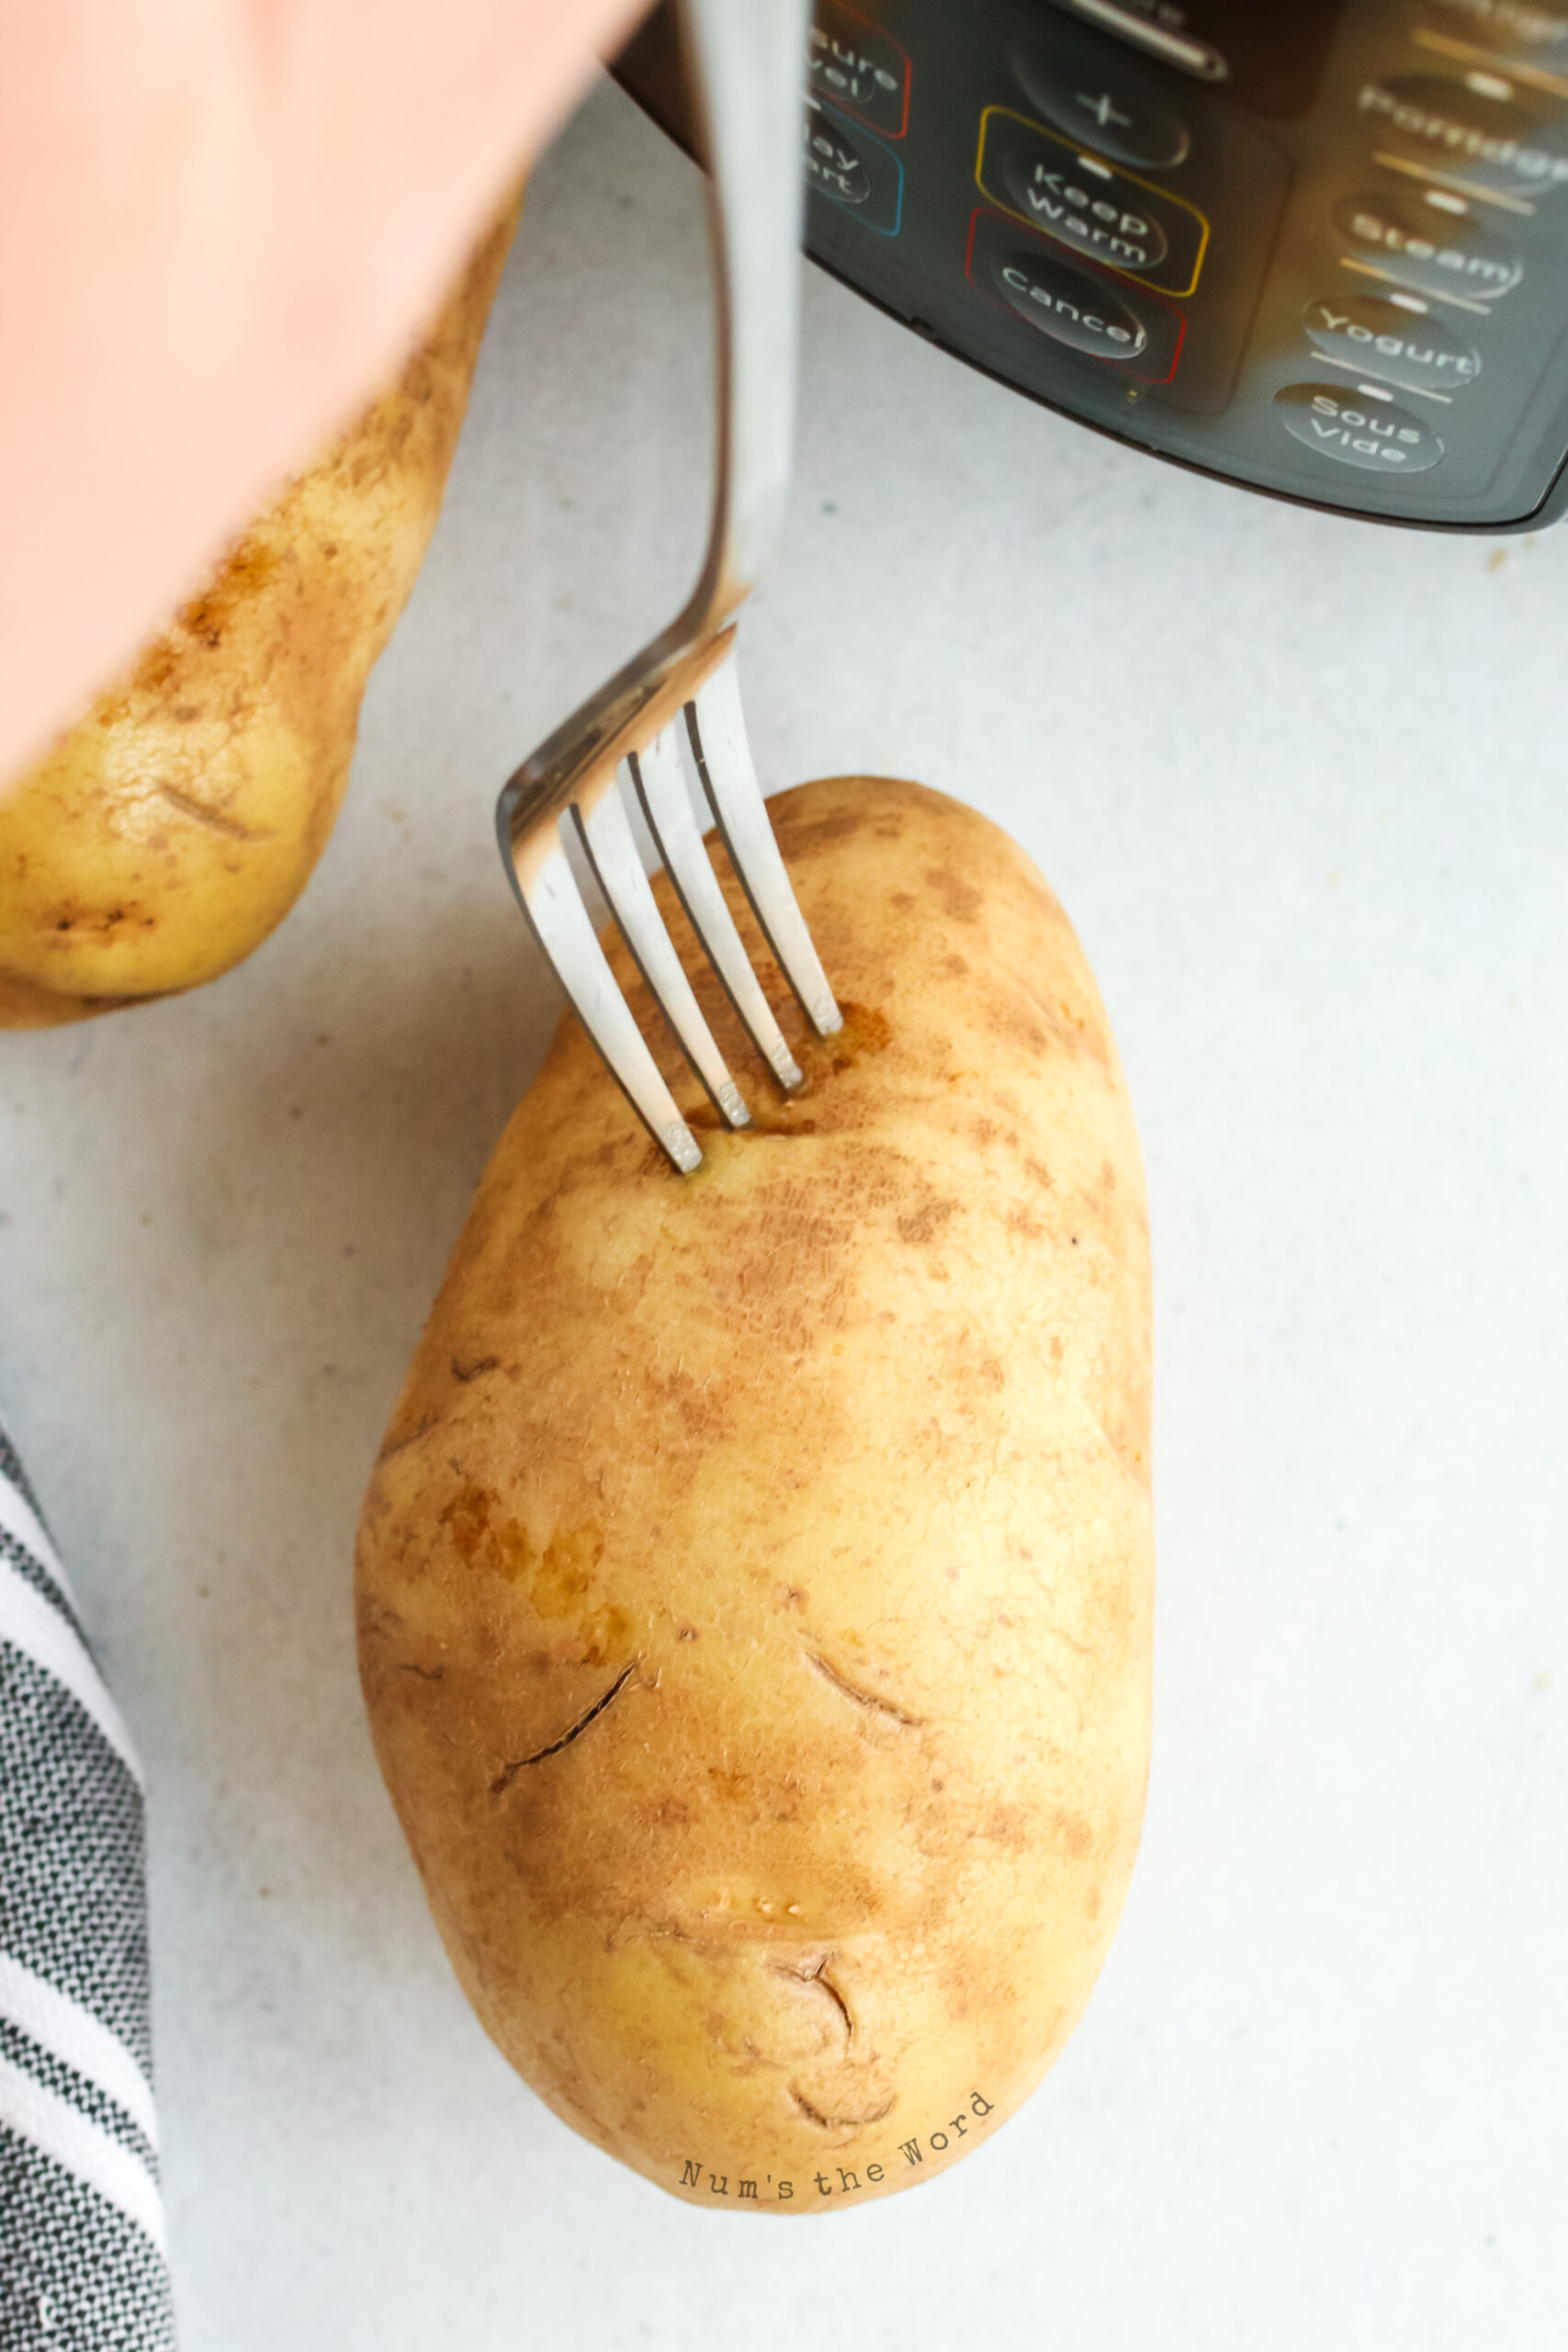 fork pricking a washed and uncooked potato